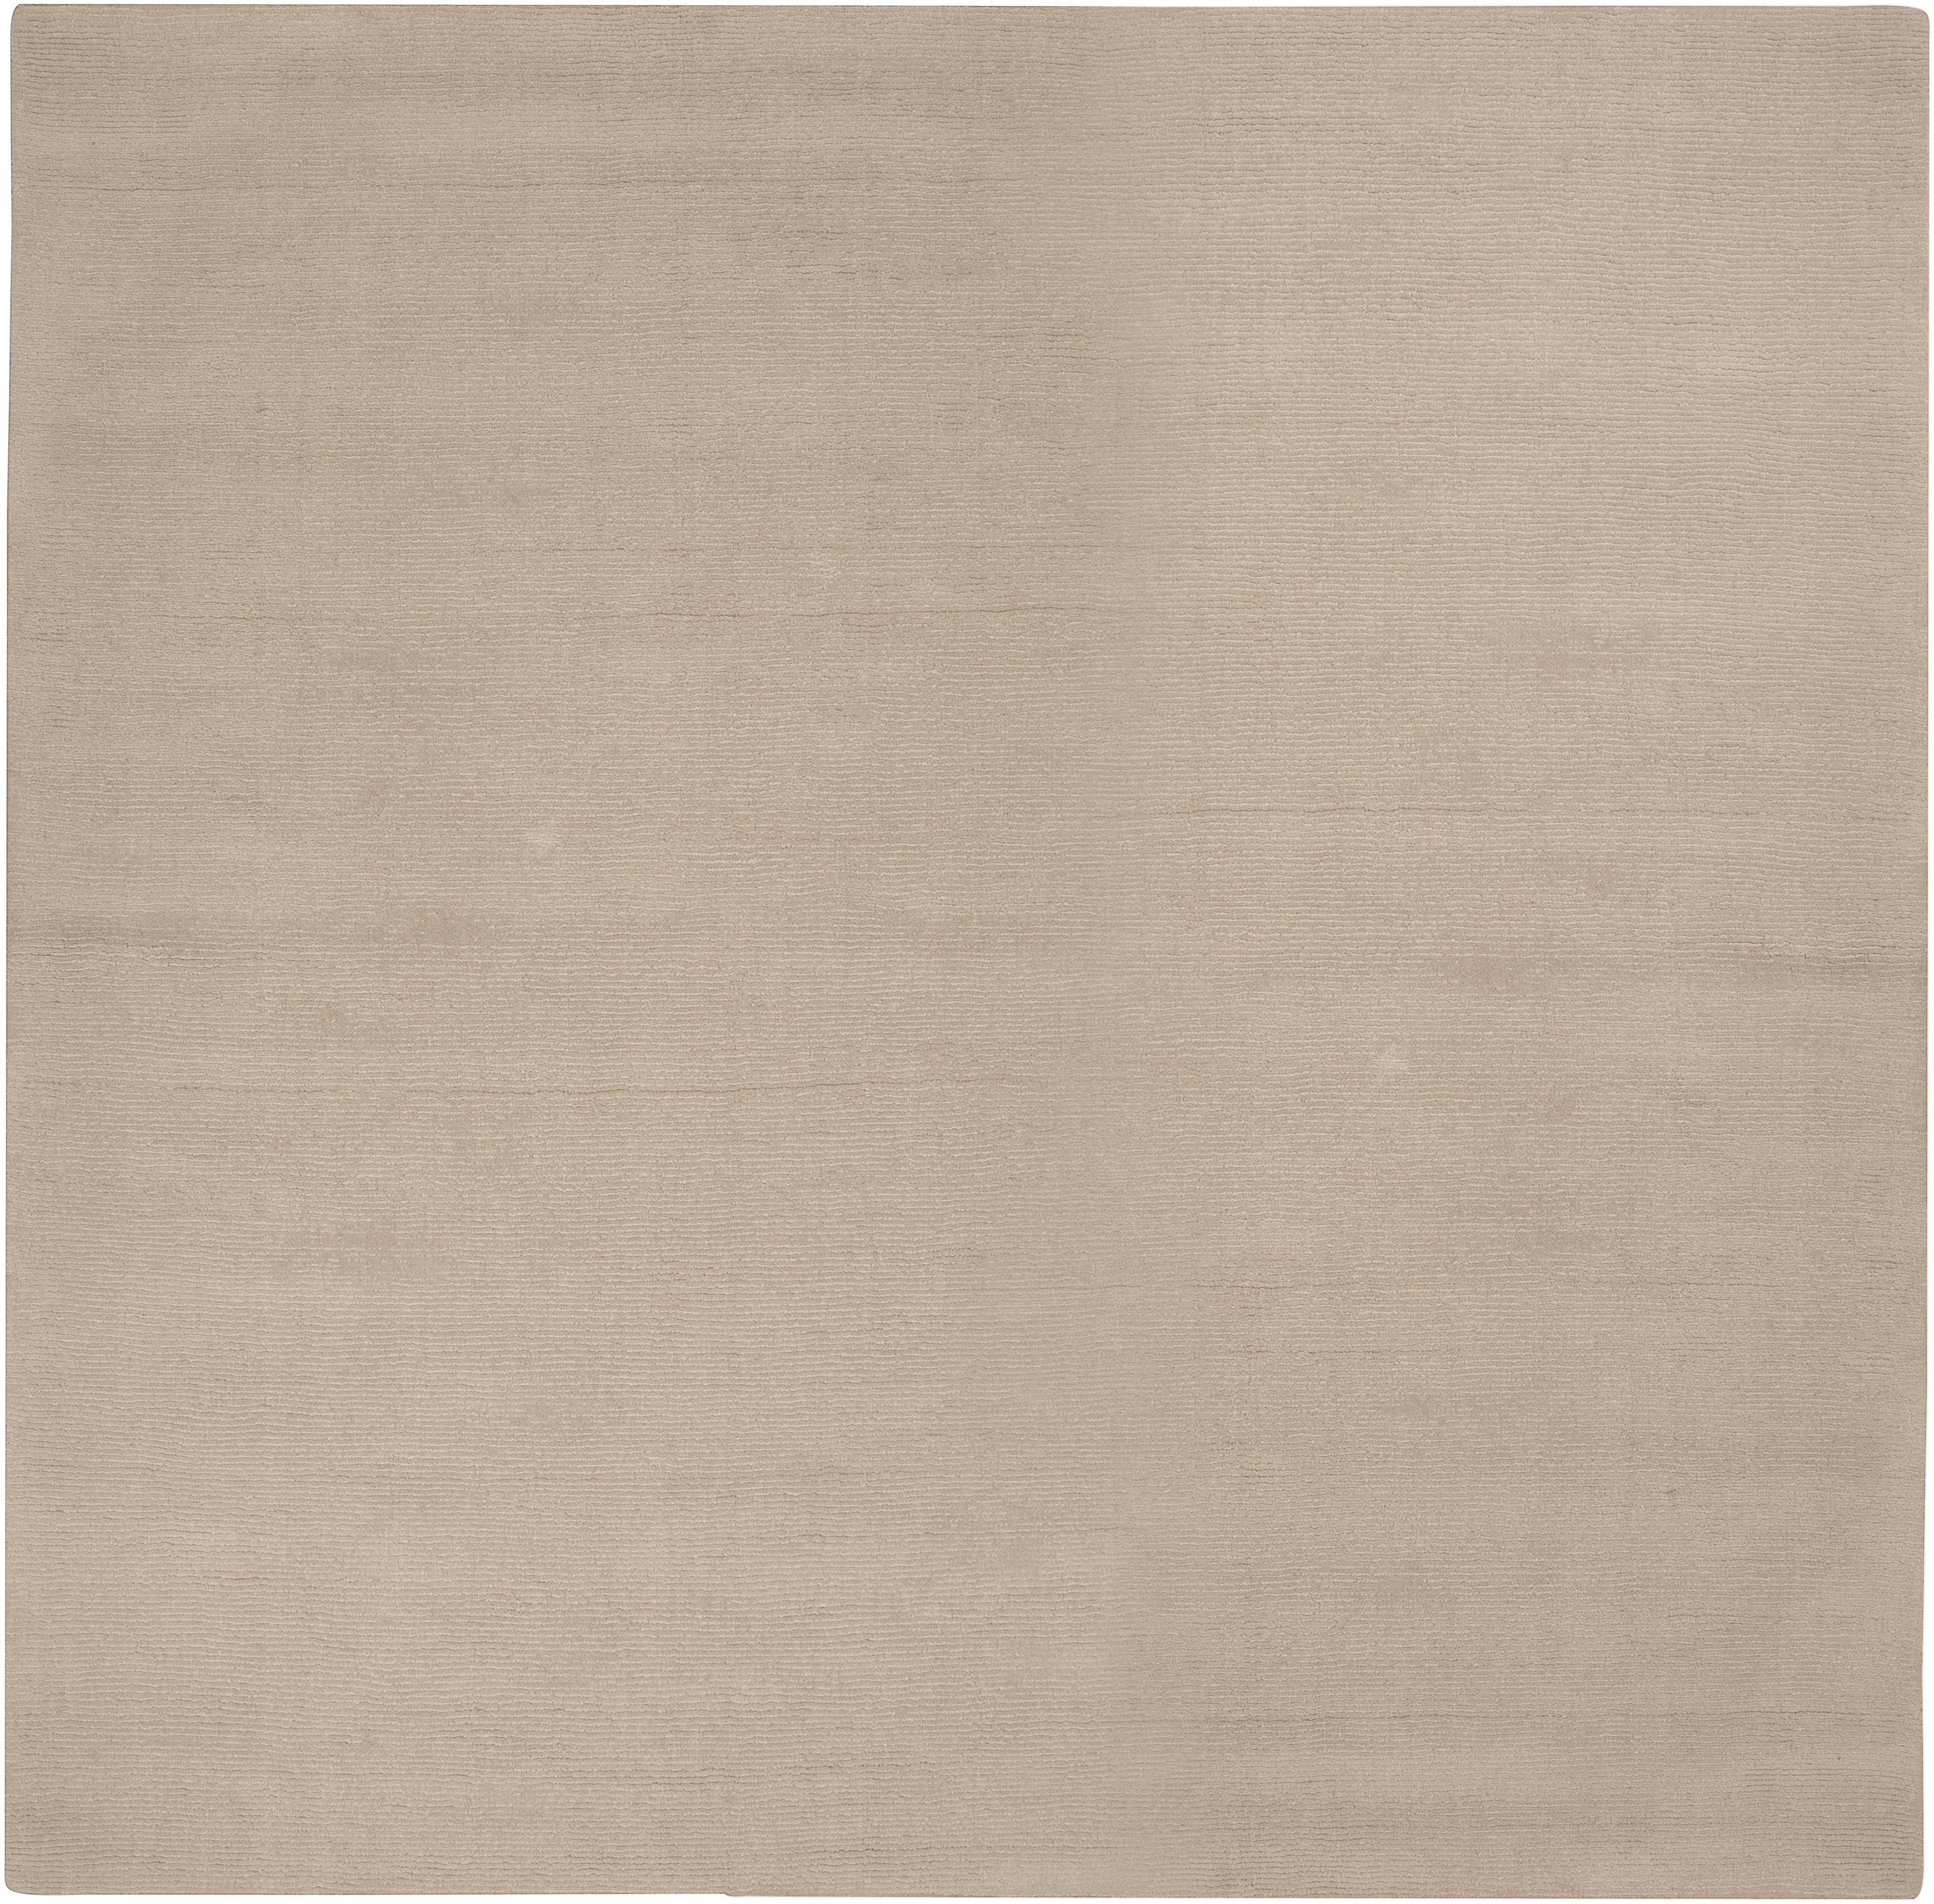 Surya Rugs Mystique 8' Square - Item Number: M335-8SQ